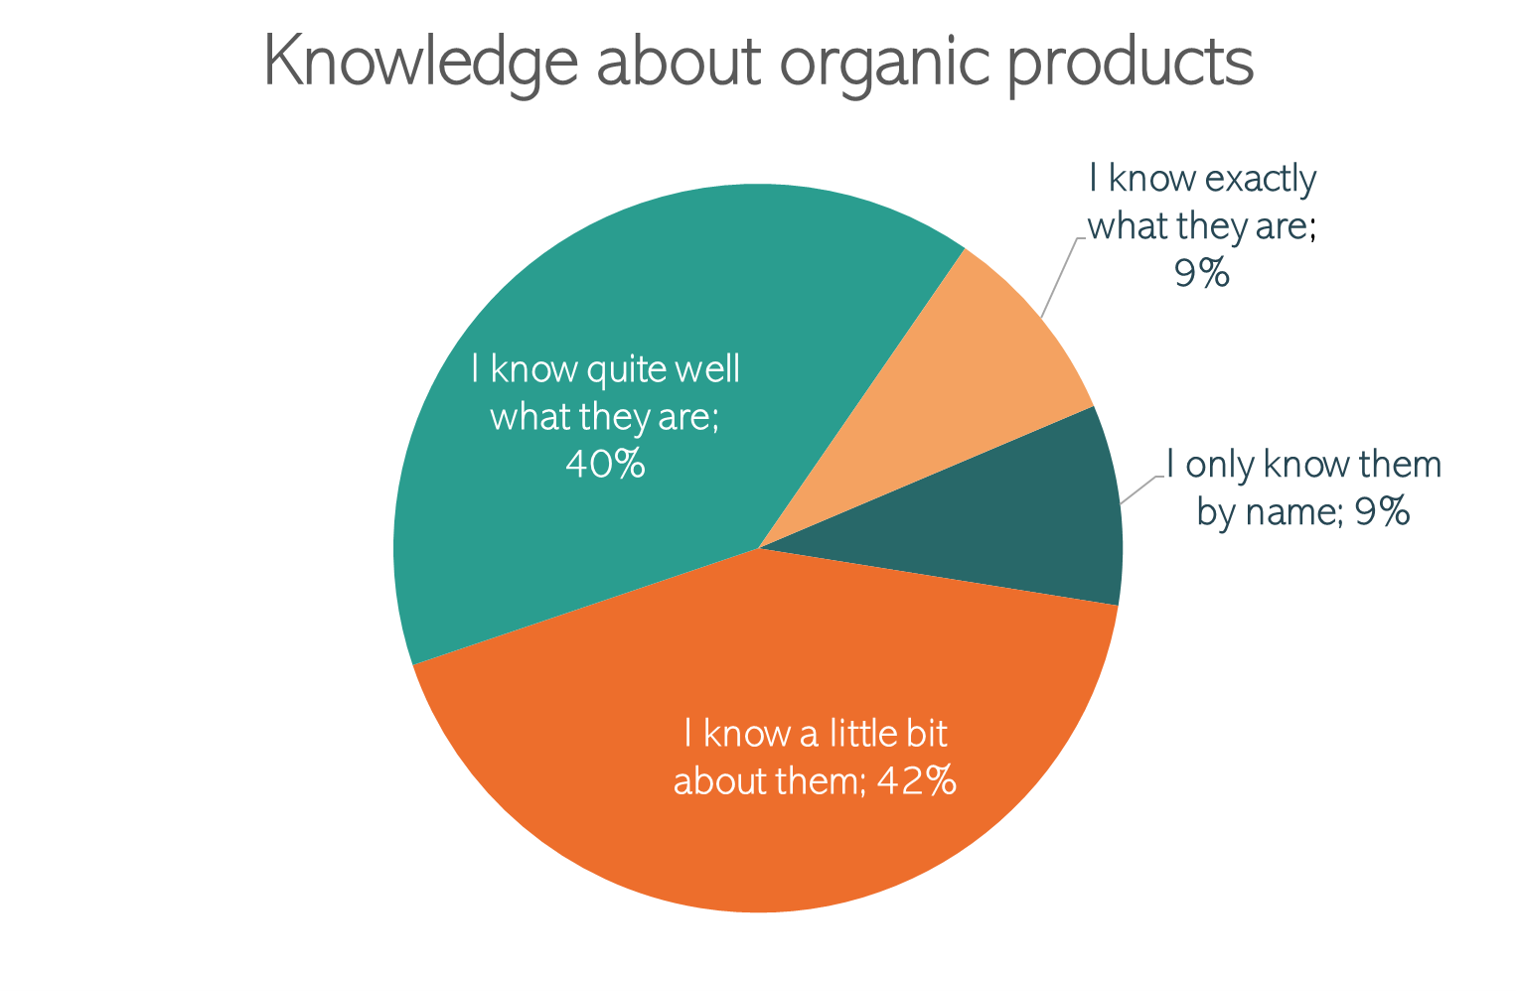 Knowledge about organic products